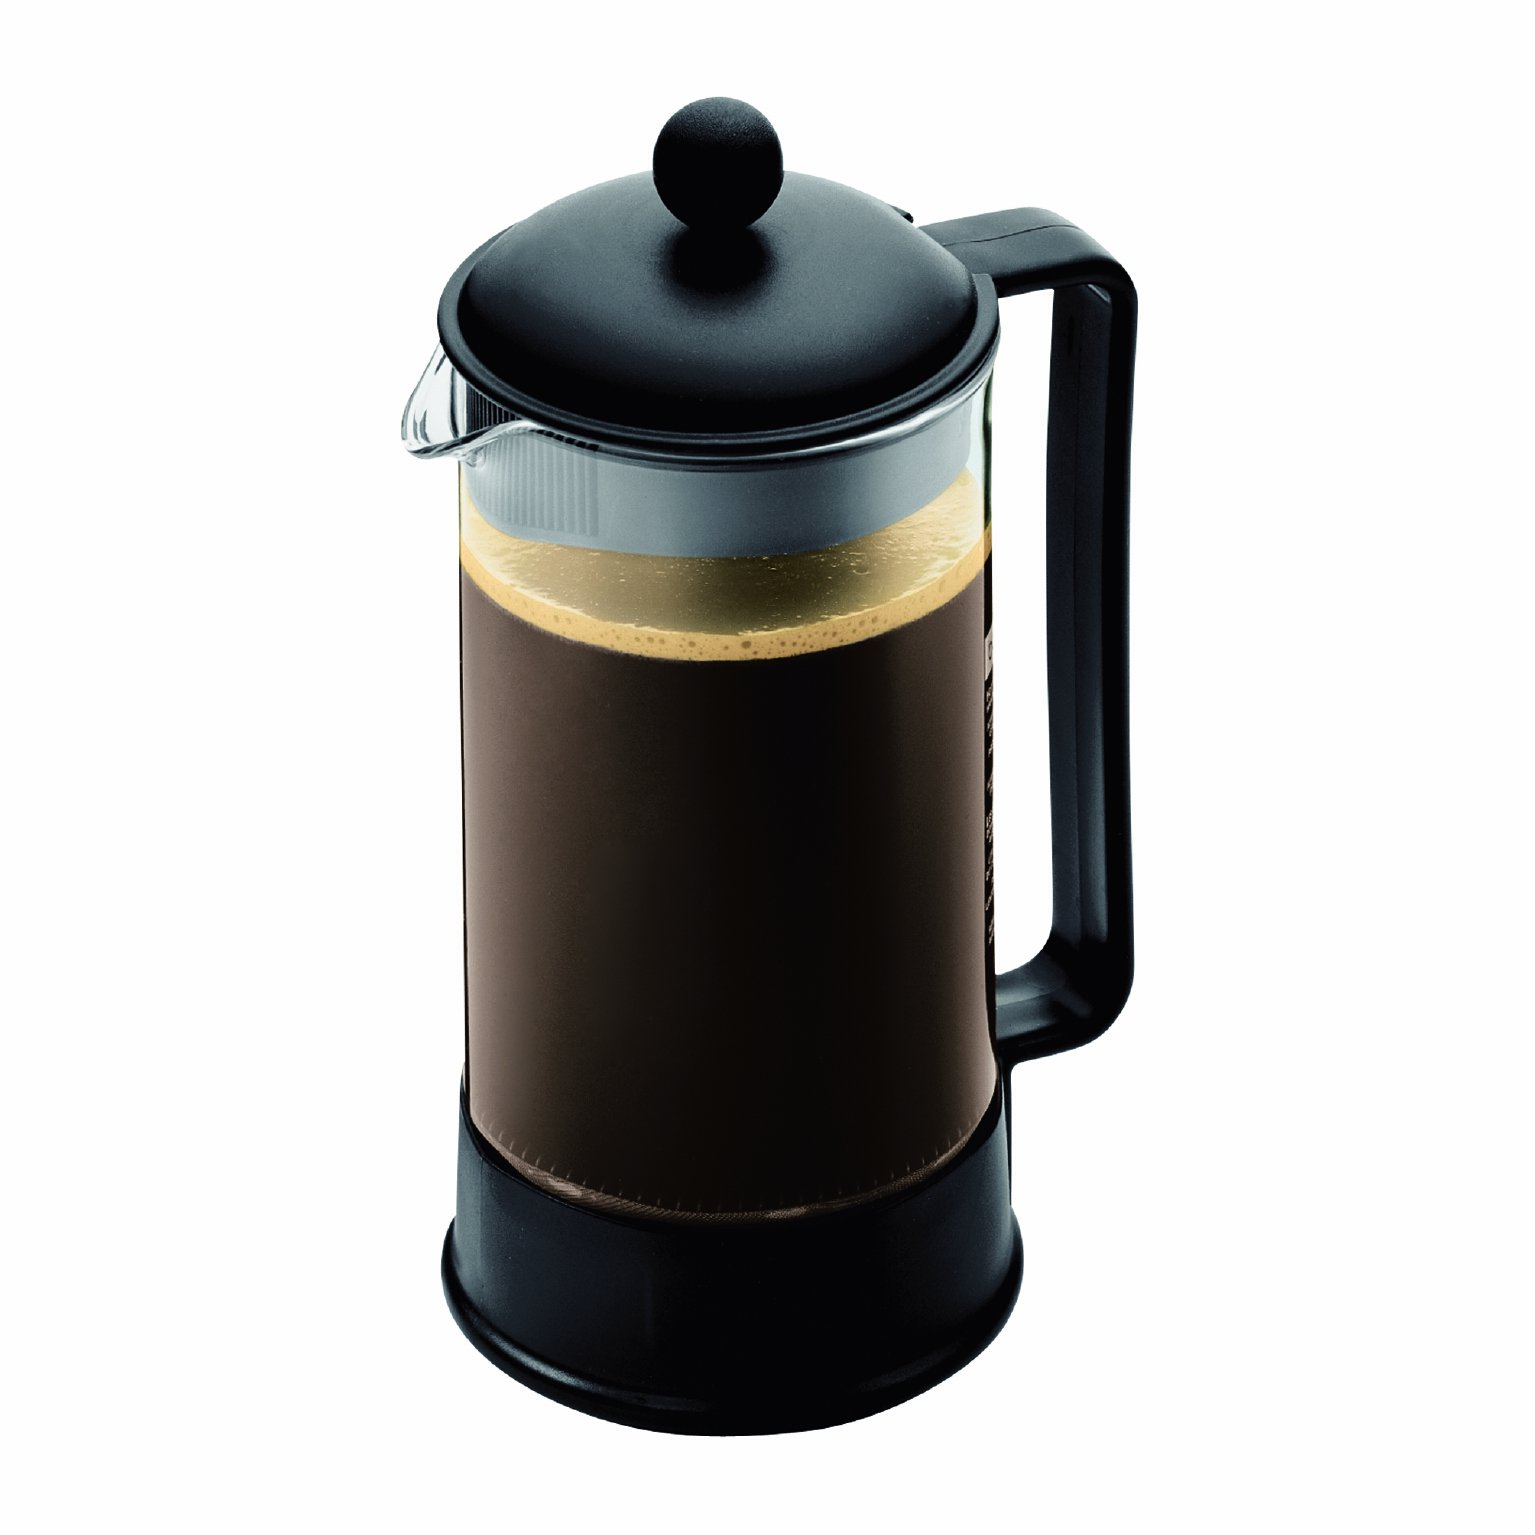 Original French Press Coffee Maker : Bodum Brazil 8 cup French Press Coffee Maker Kitchen Tools List